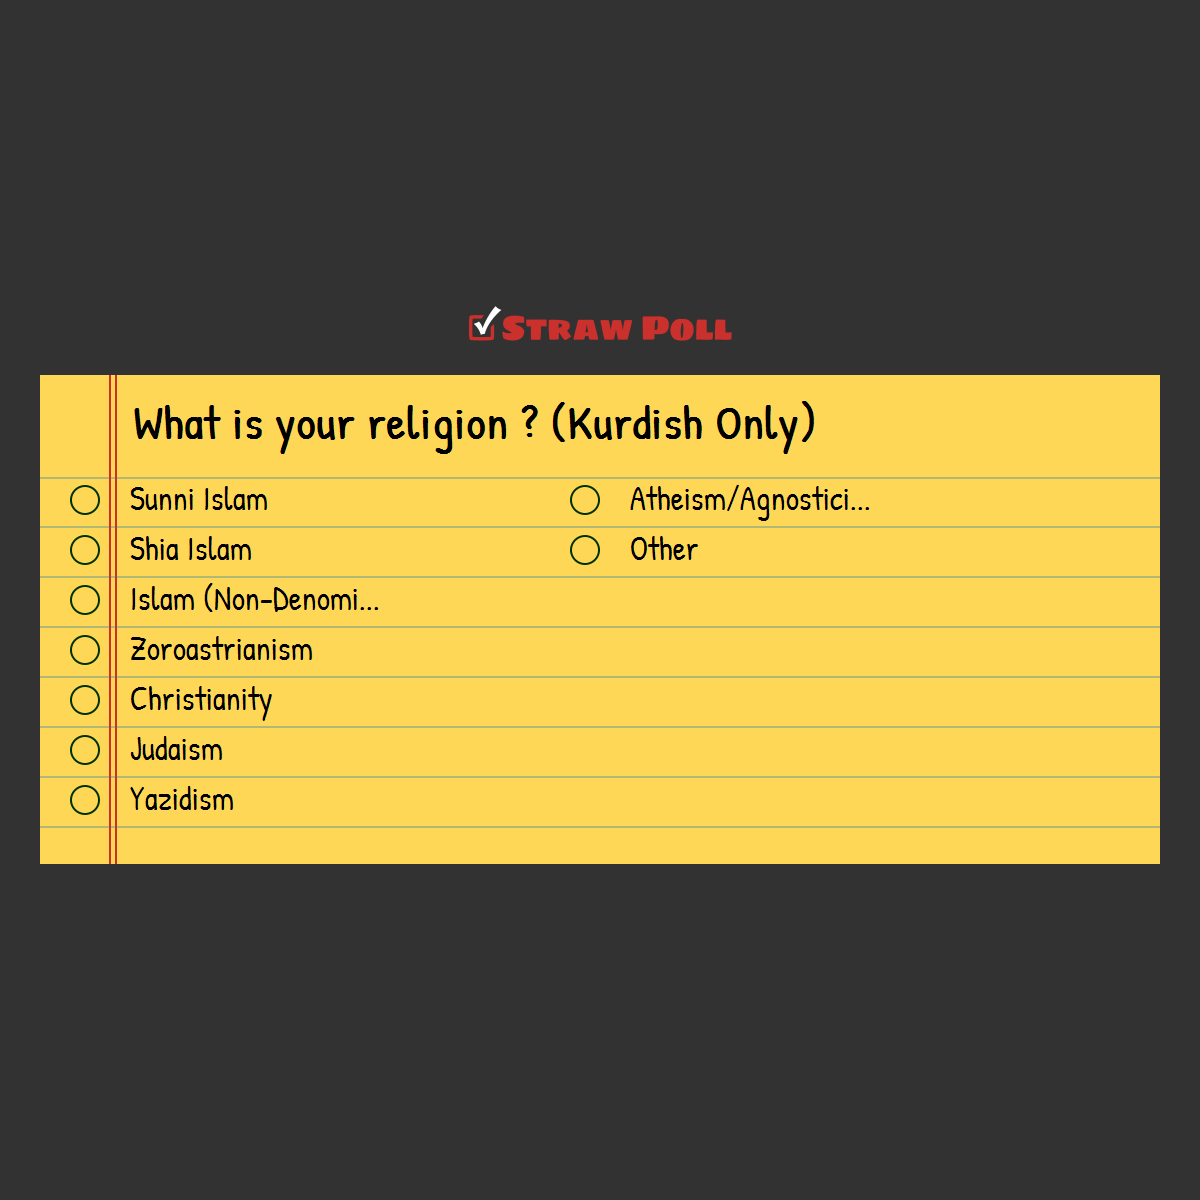 What is your religion ? (Kurdish Only)